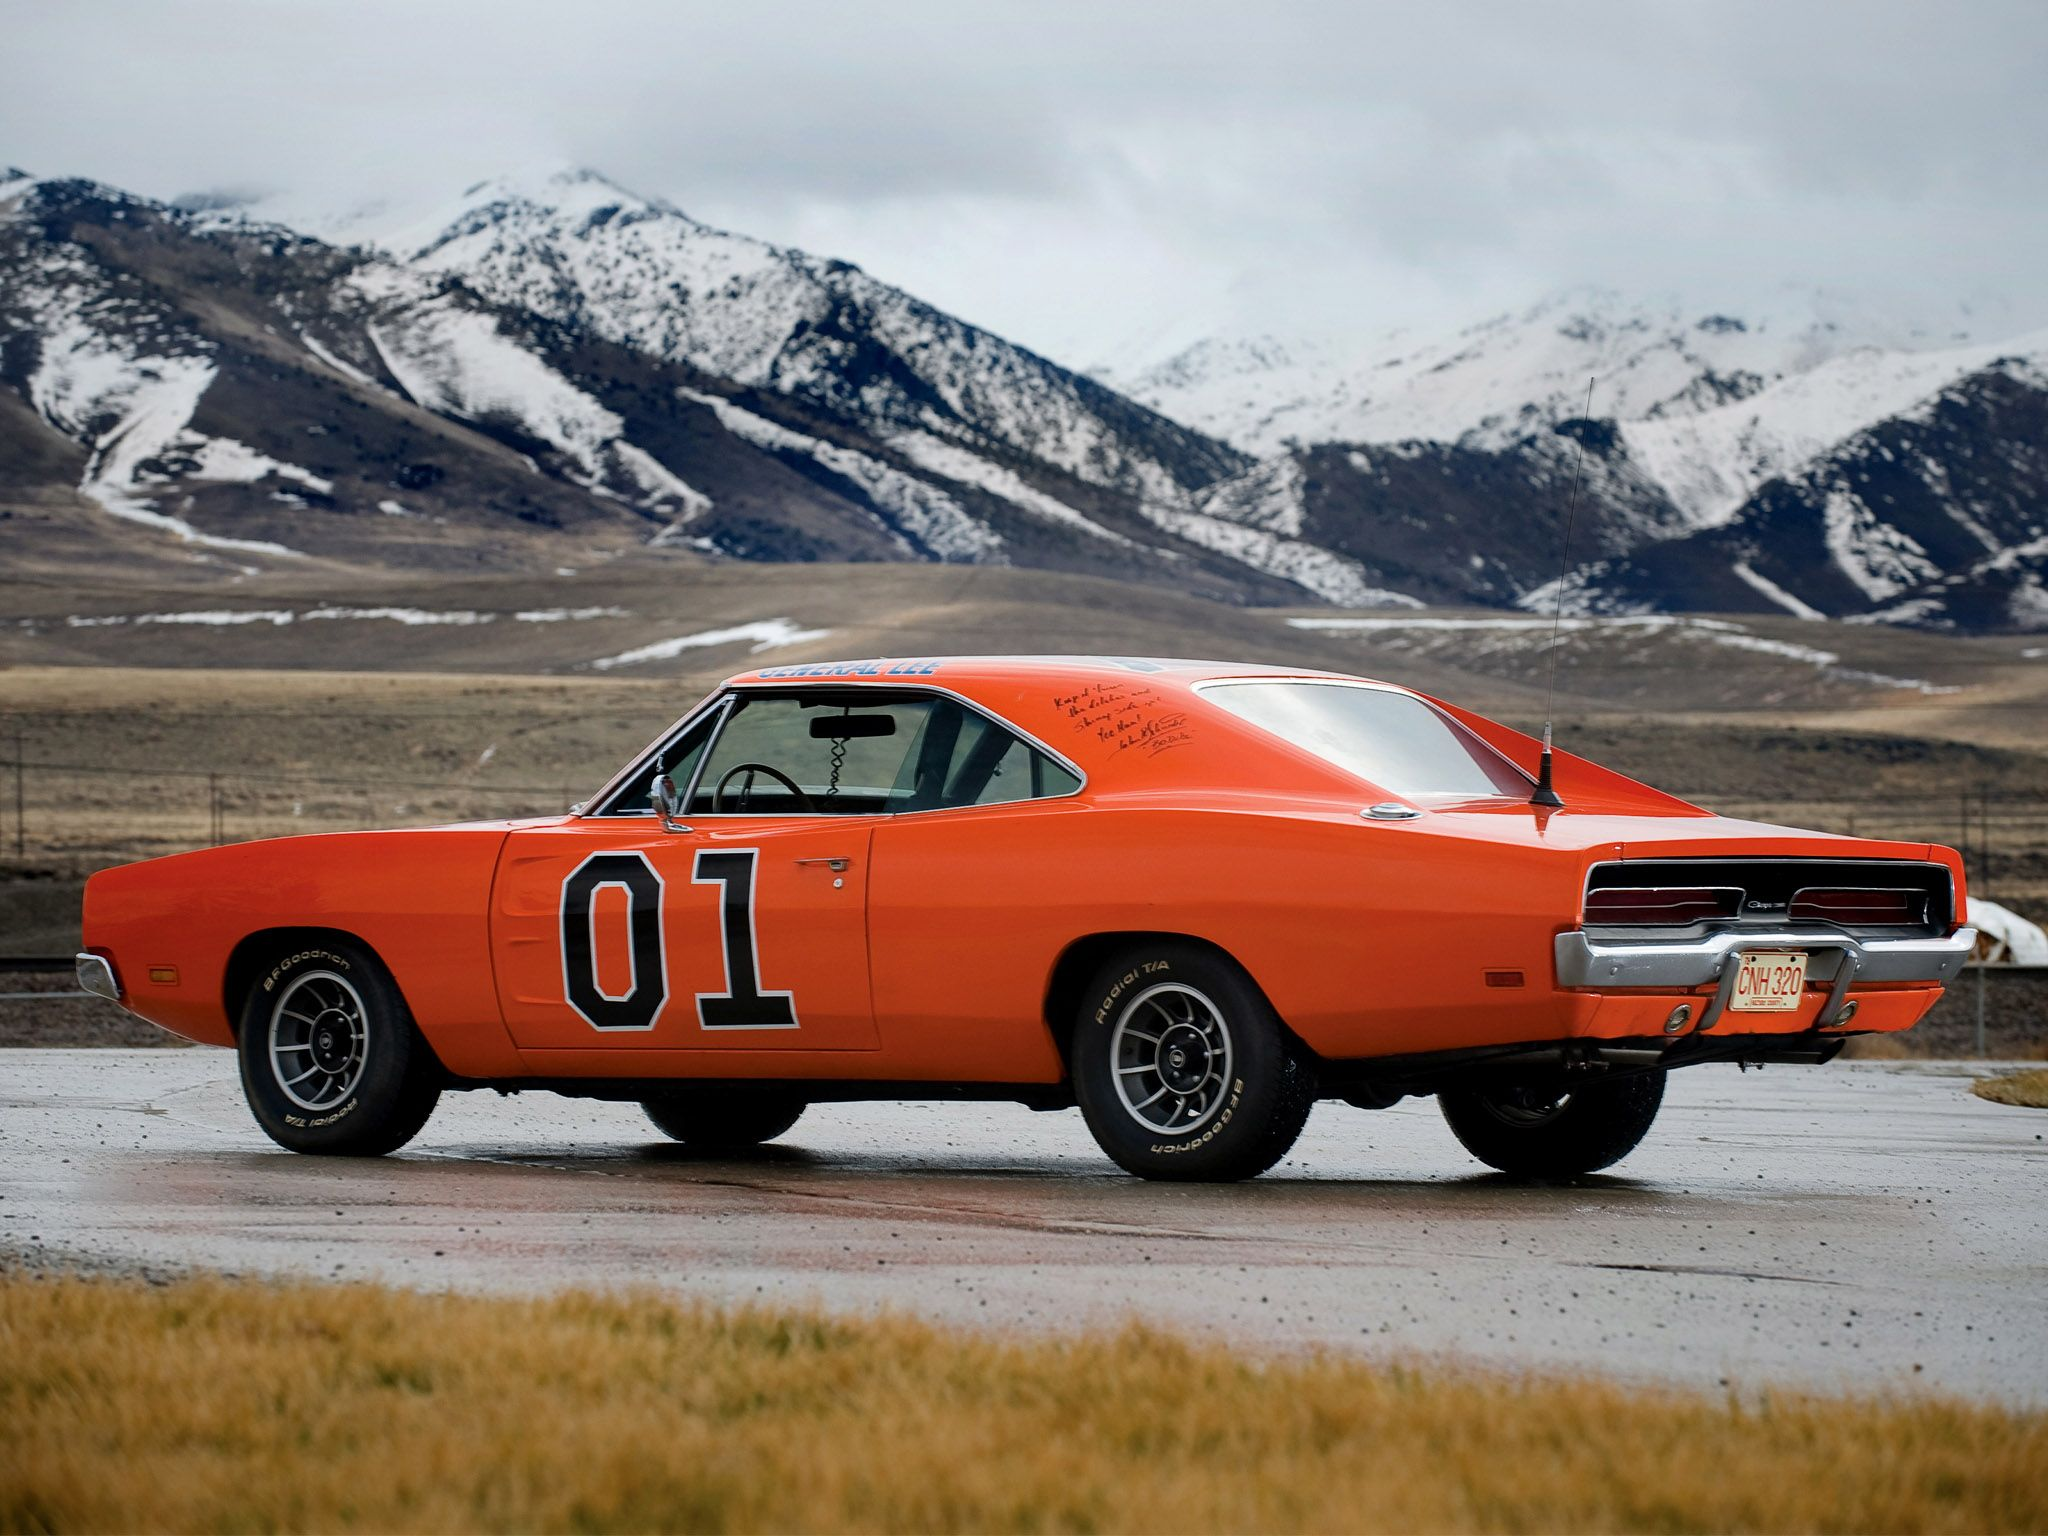 Dodge Charger General Lee 1959 Photo 03 Car In Pictures Car Photo Gallery Mopar Cars Dodge Charger 1969 Dodge Charger